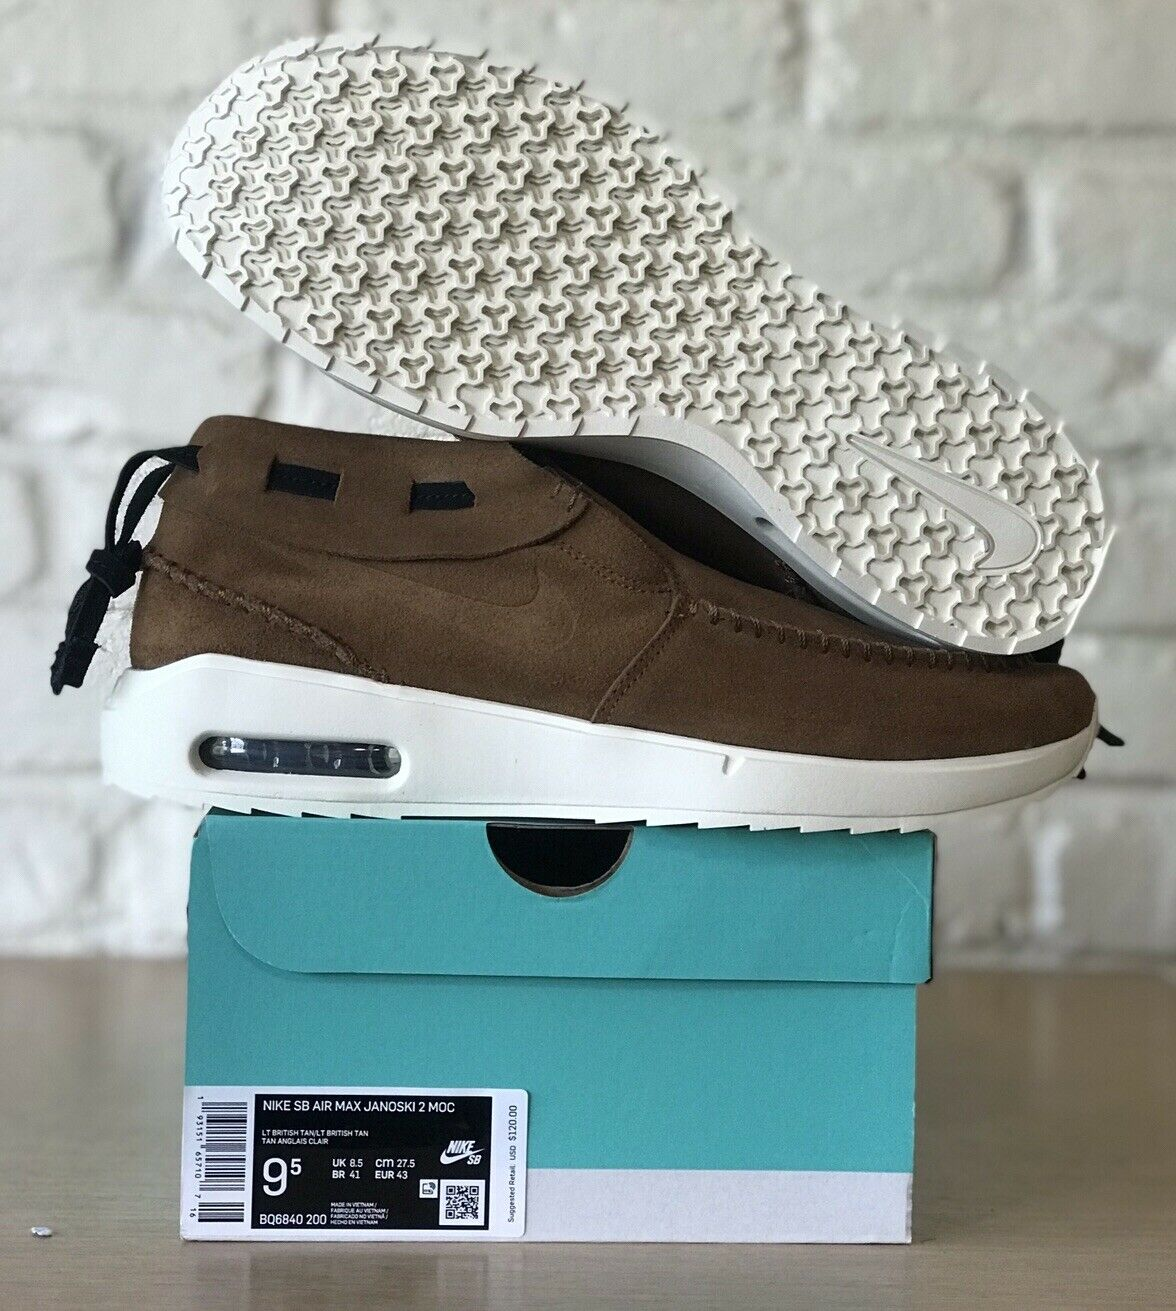 Arrepentimiento traductor Manifiesto  Size 9 - Nike SB Air Max Stefan Janoski 2 MOC Brown Suede for sale online |  eBay